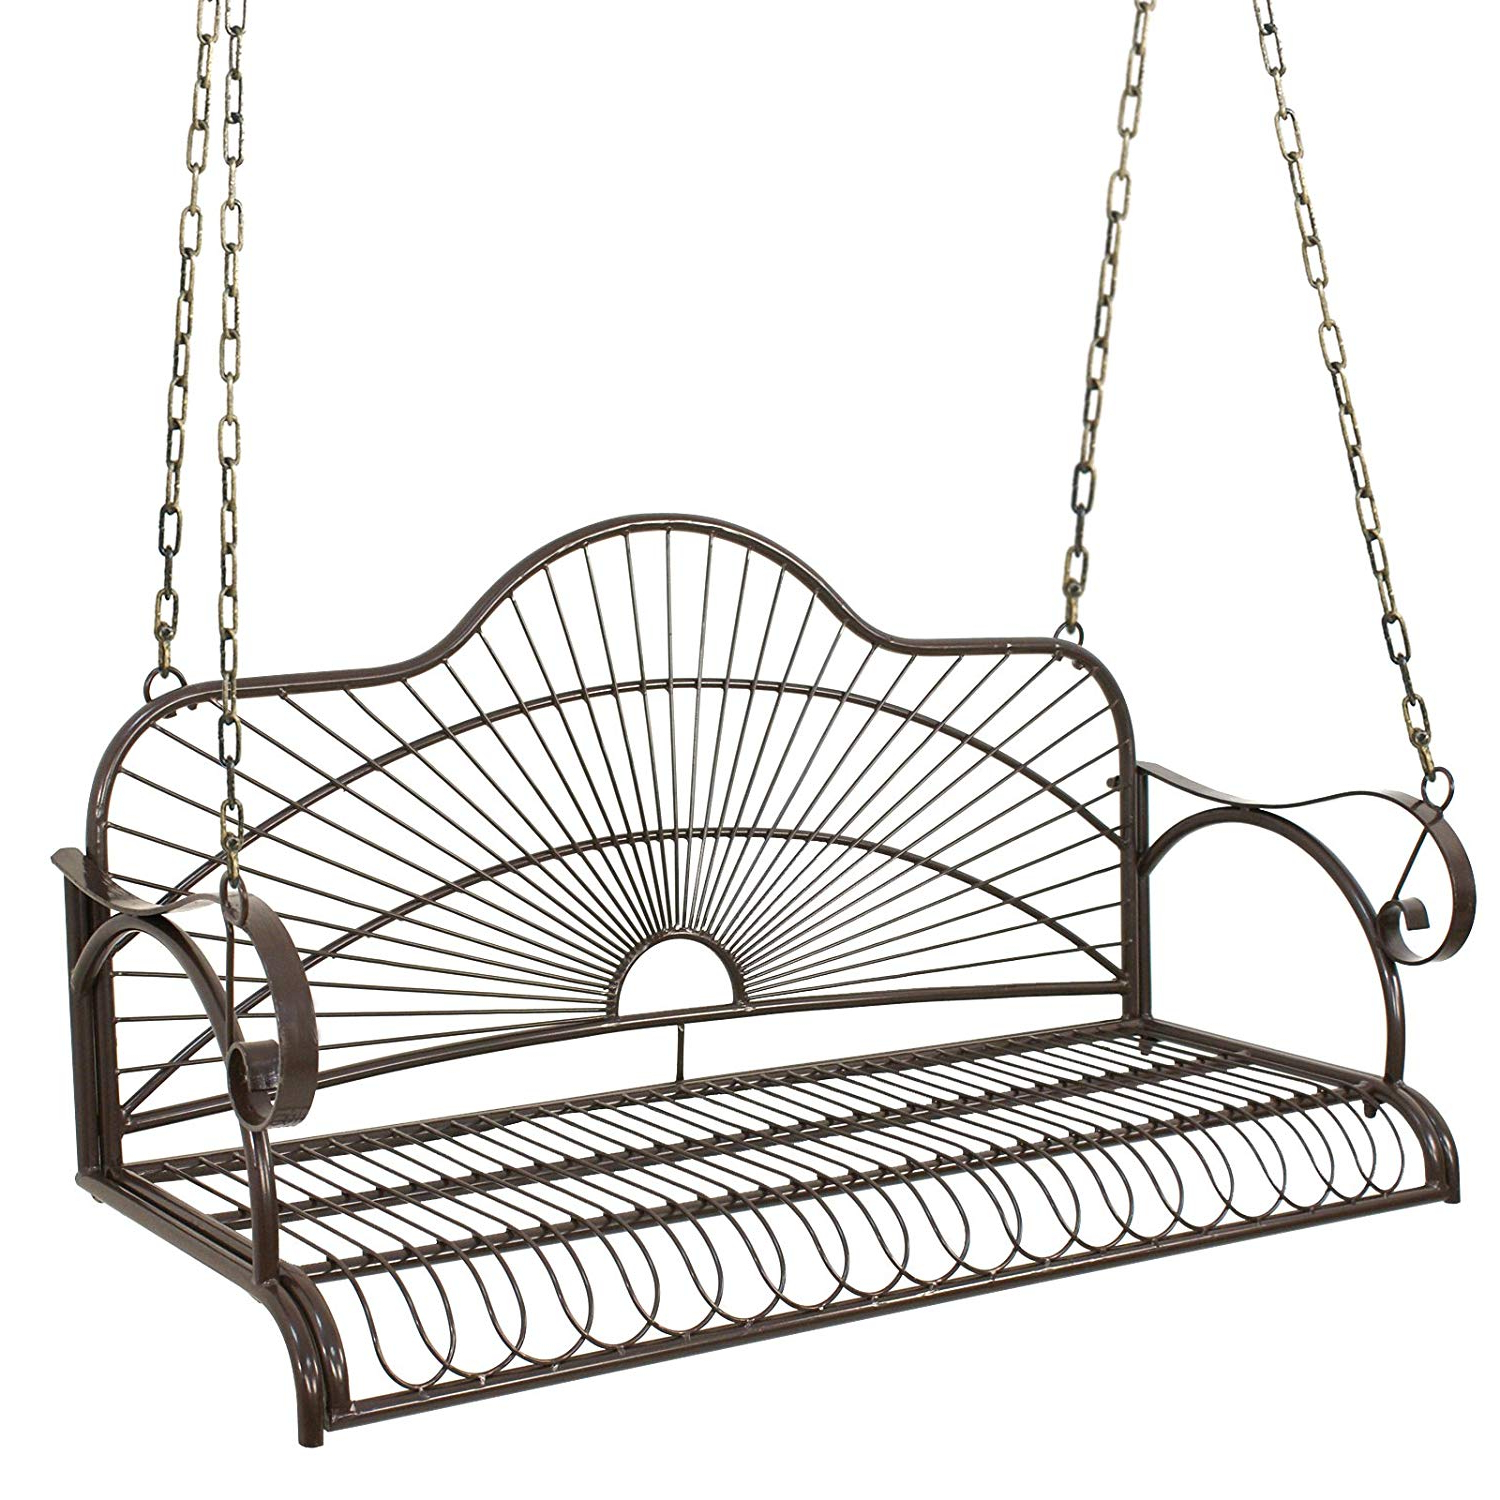 2 Person Antique Black Iron Outdoor Swings With Regard To Most Up To Date Amazon : Nova Microdermabrasion Patio Metal Hanging (View 7 of 30)